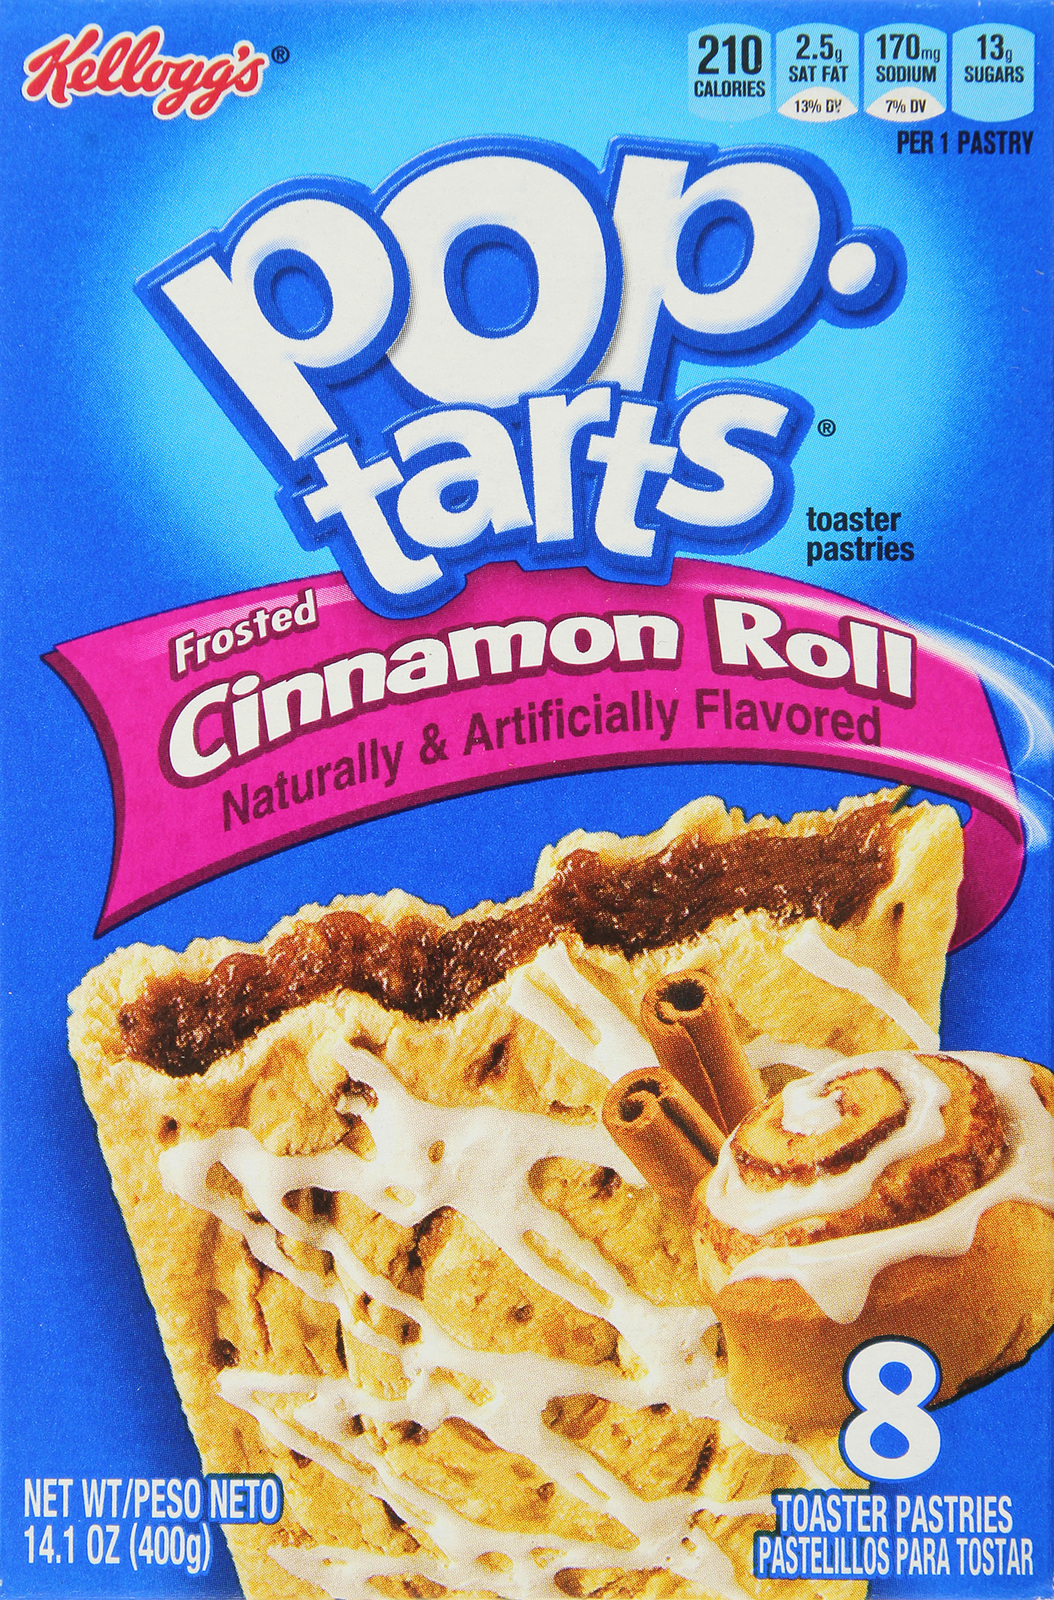 Kellogg's Pop Tarts Frosted Cinnamon Roll (8 Pack) image